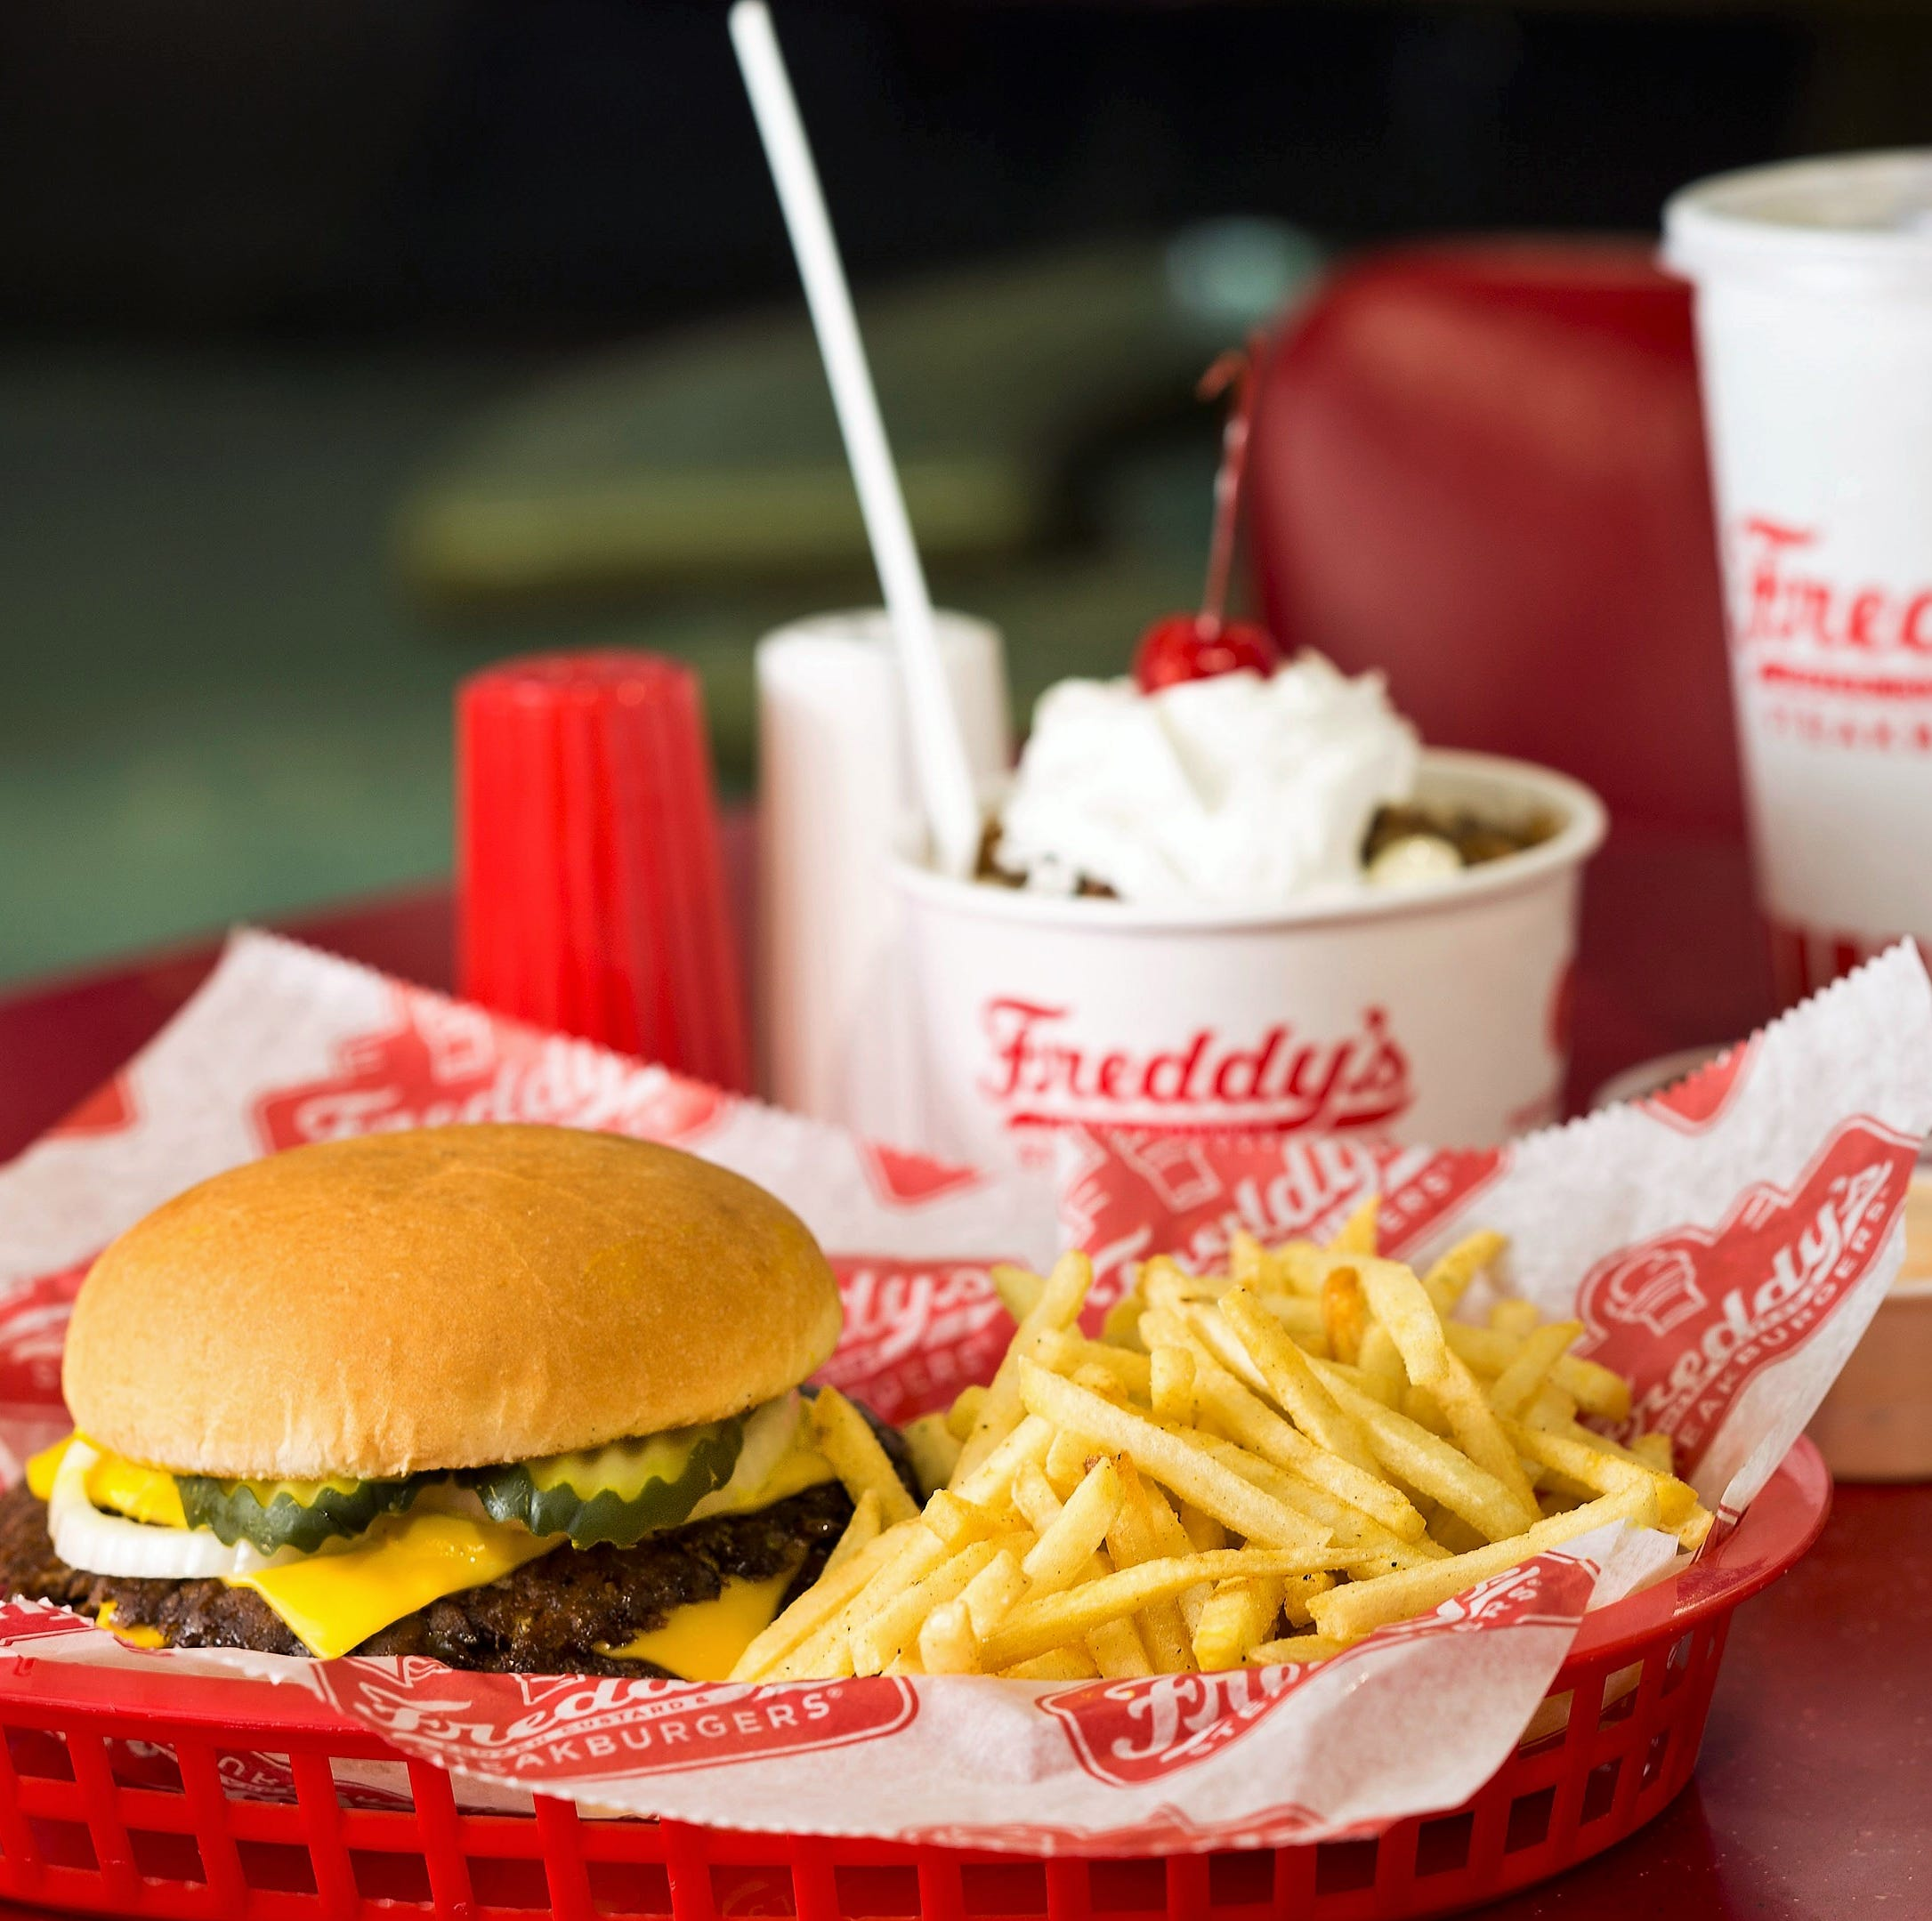 What's new: Freddy's and the return of Bite of Belgium coming soon